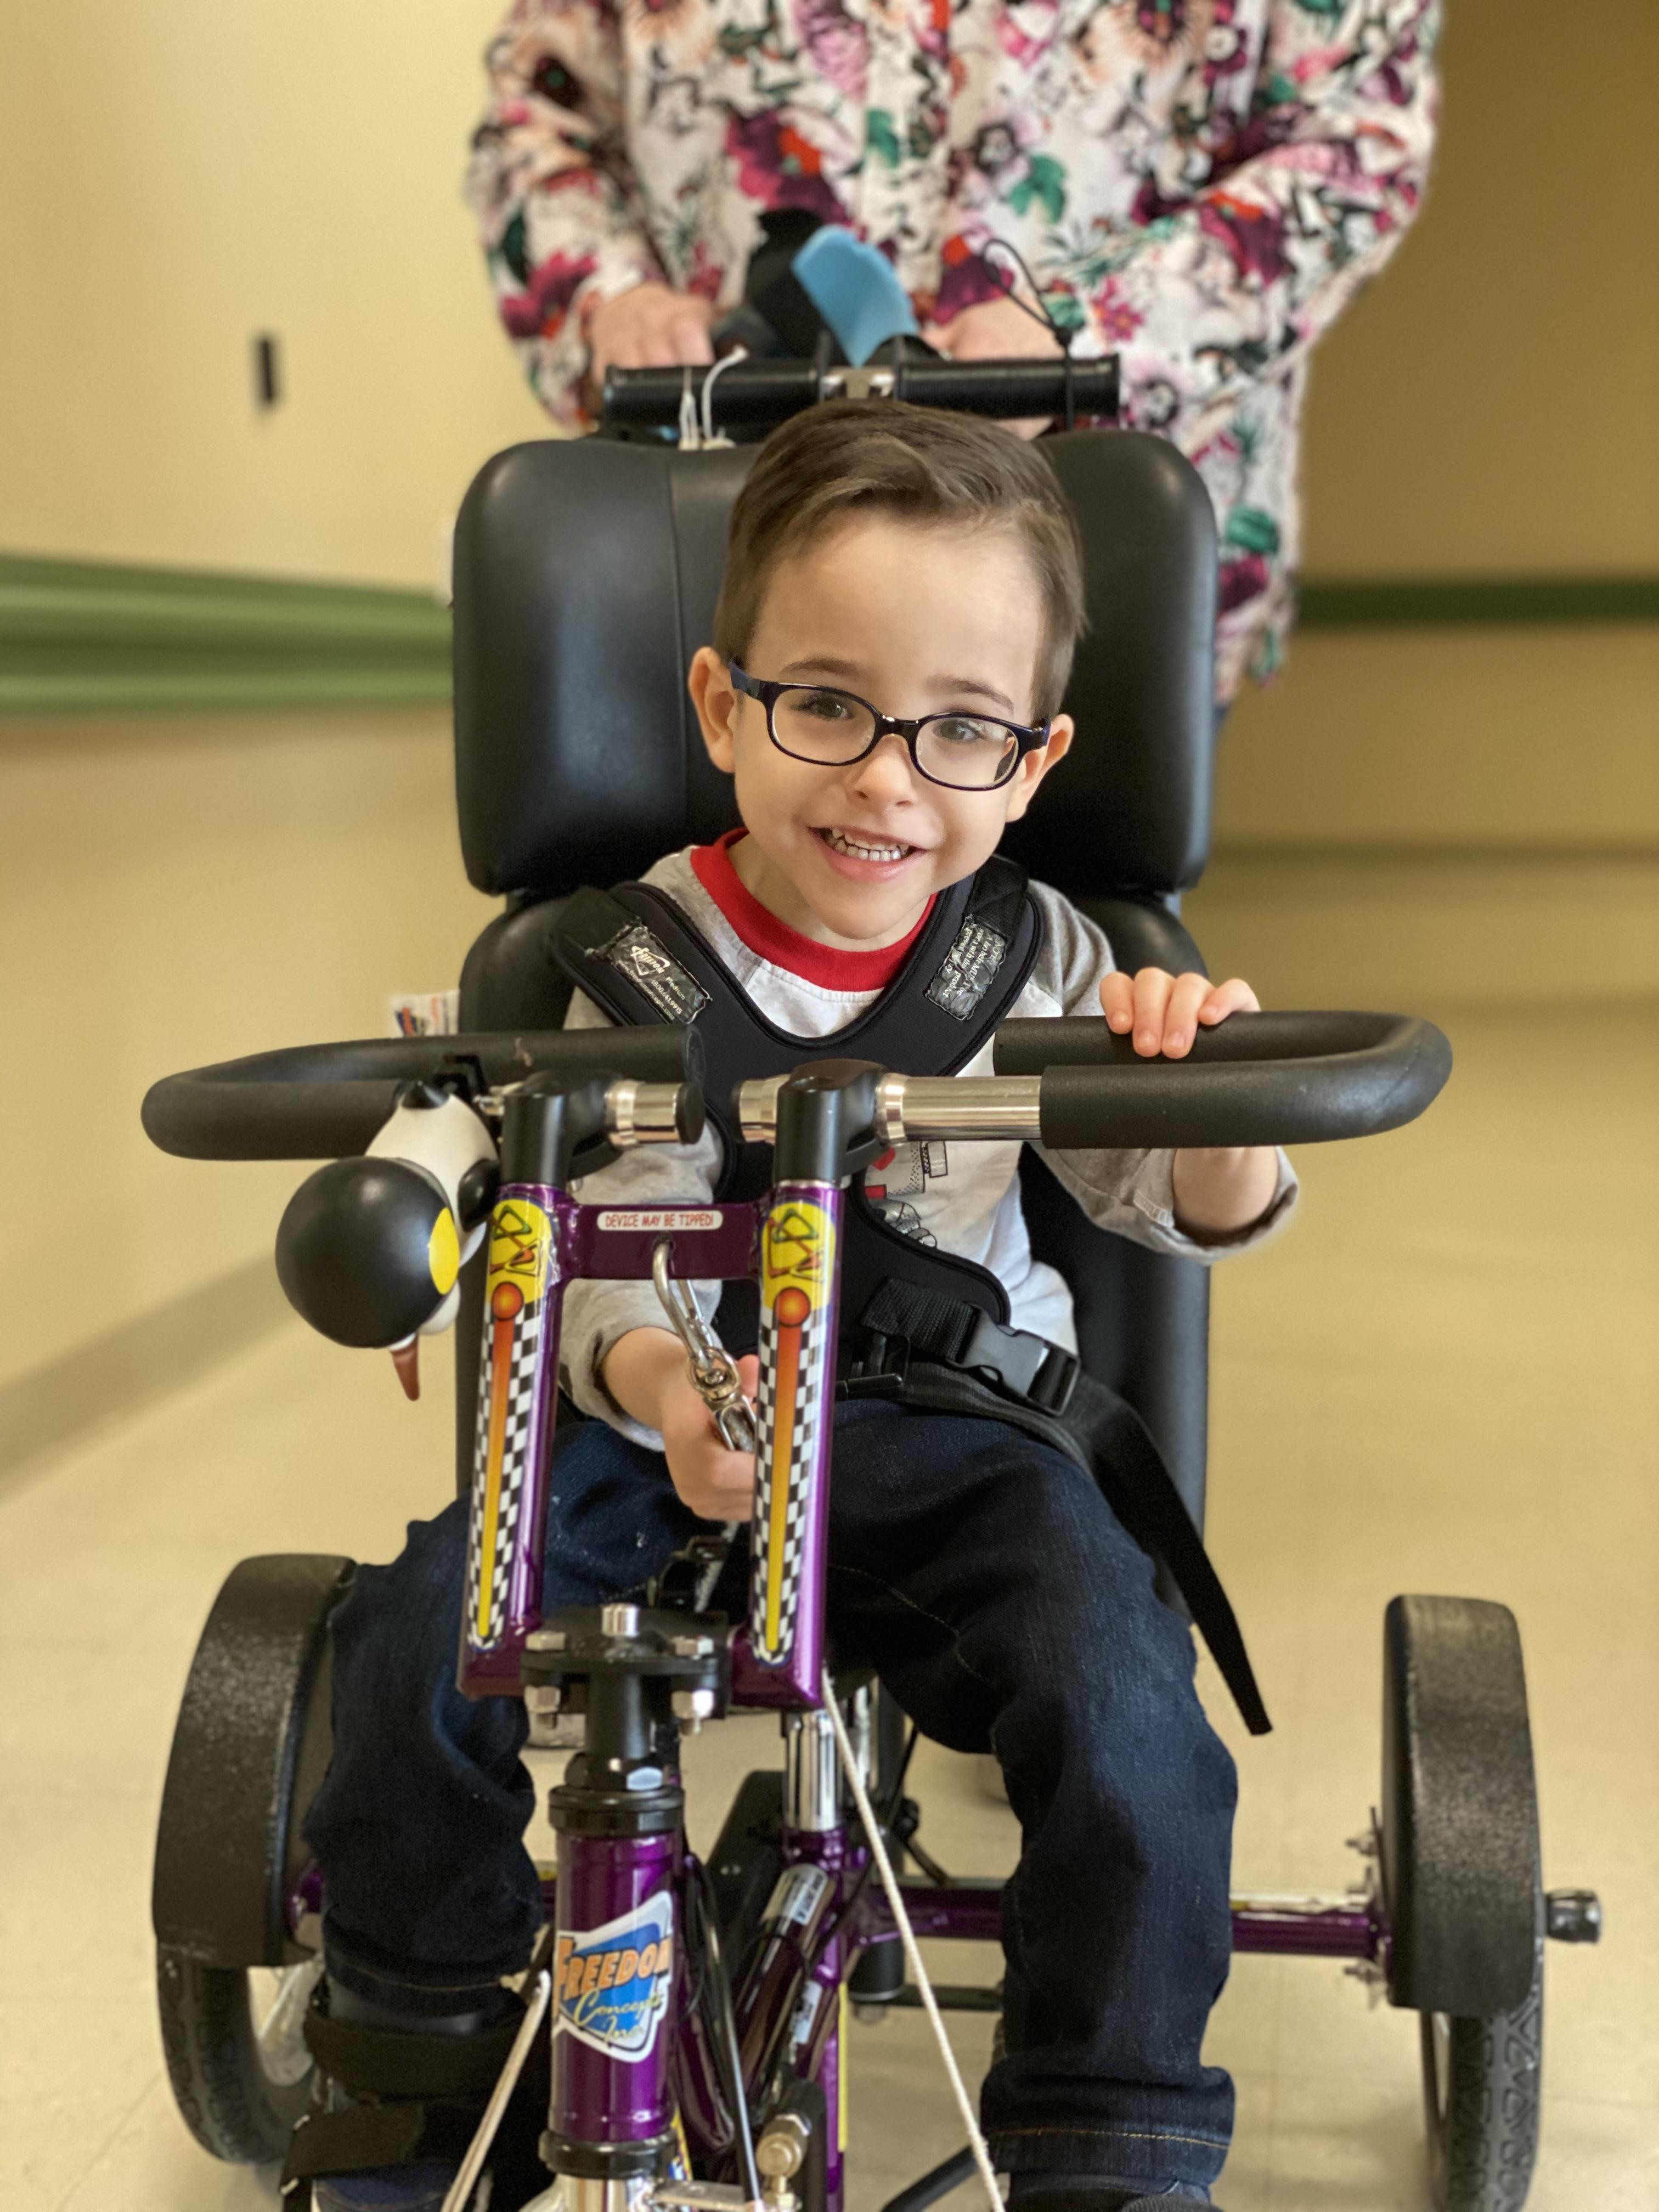 Student in the Primary Program bike riding during an Occupational Therapy exercise.